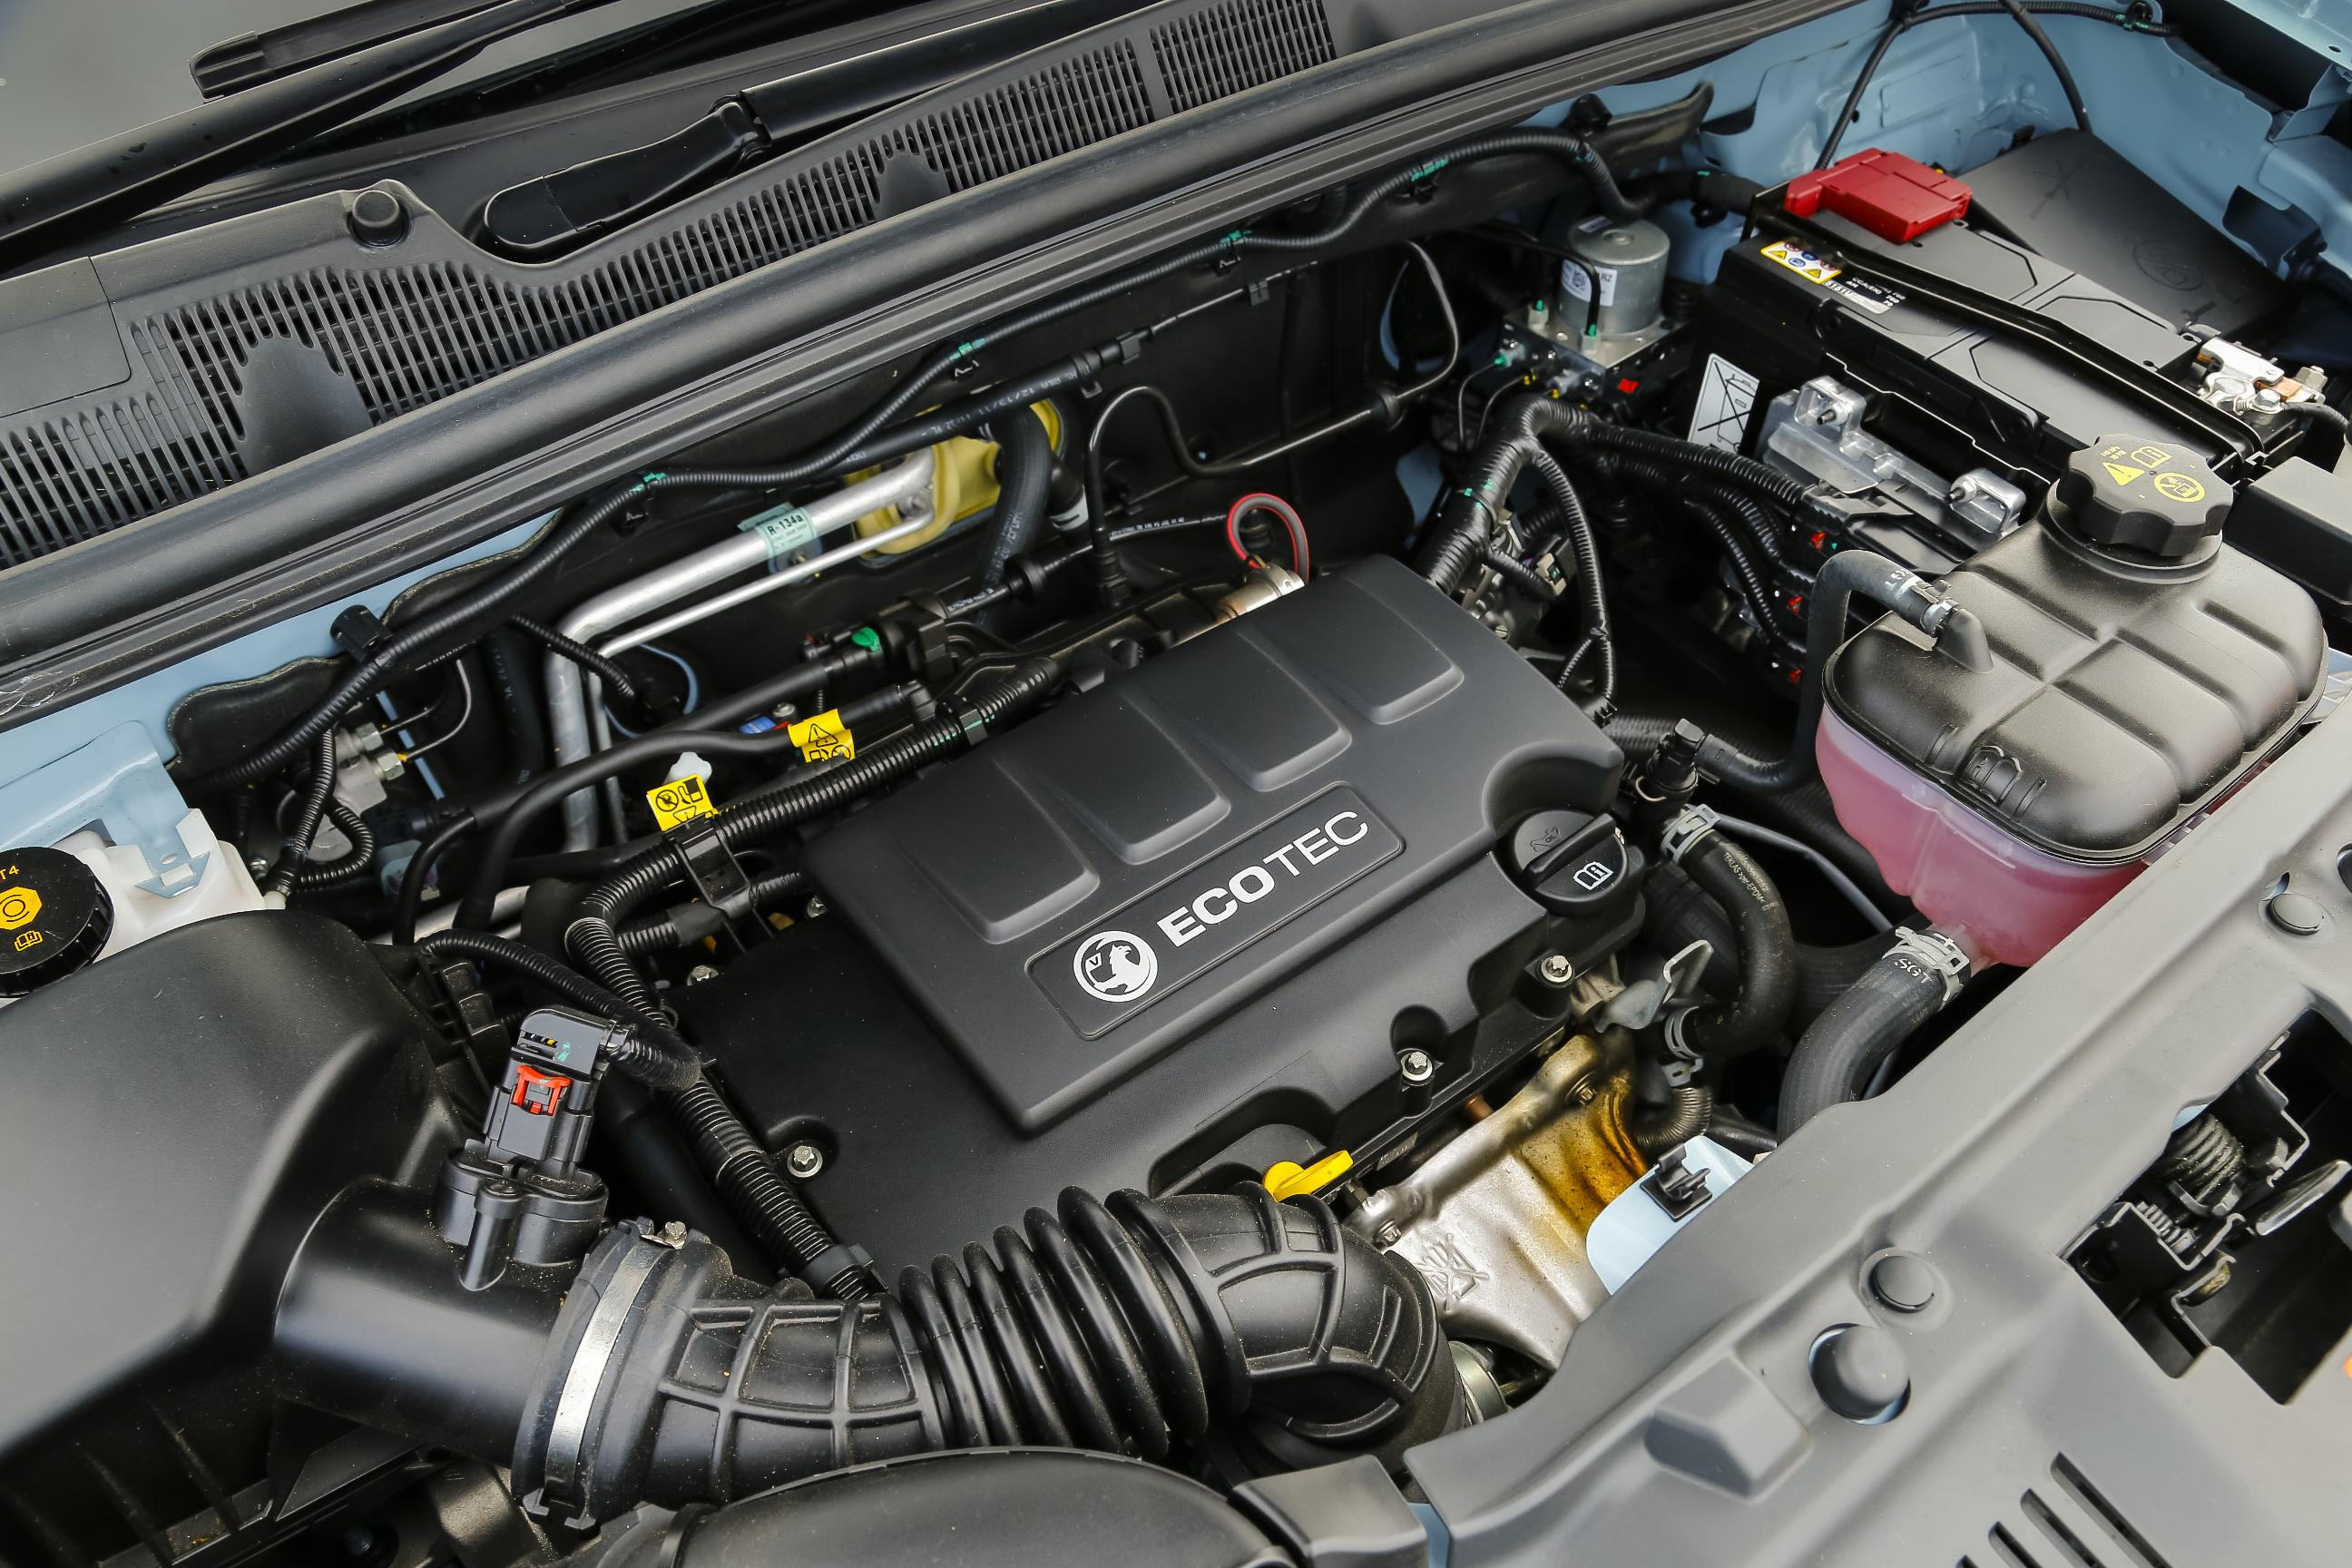 Vauxhall Mokka engine